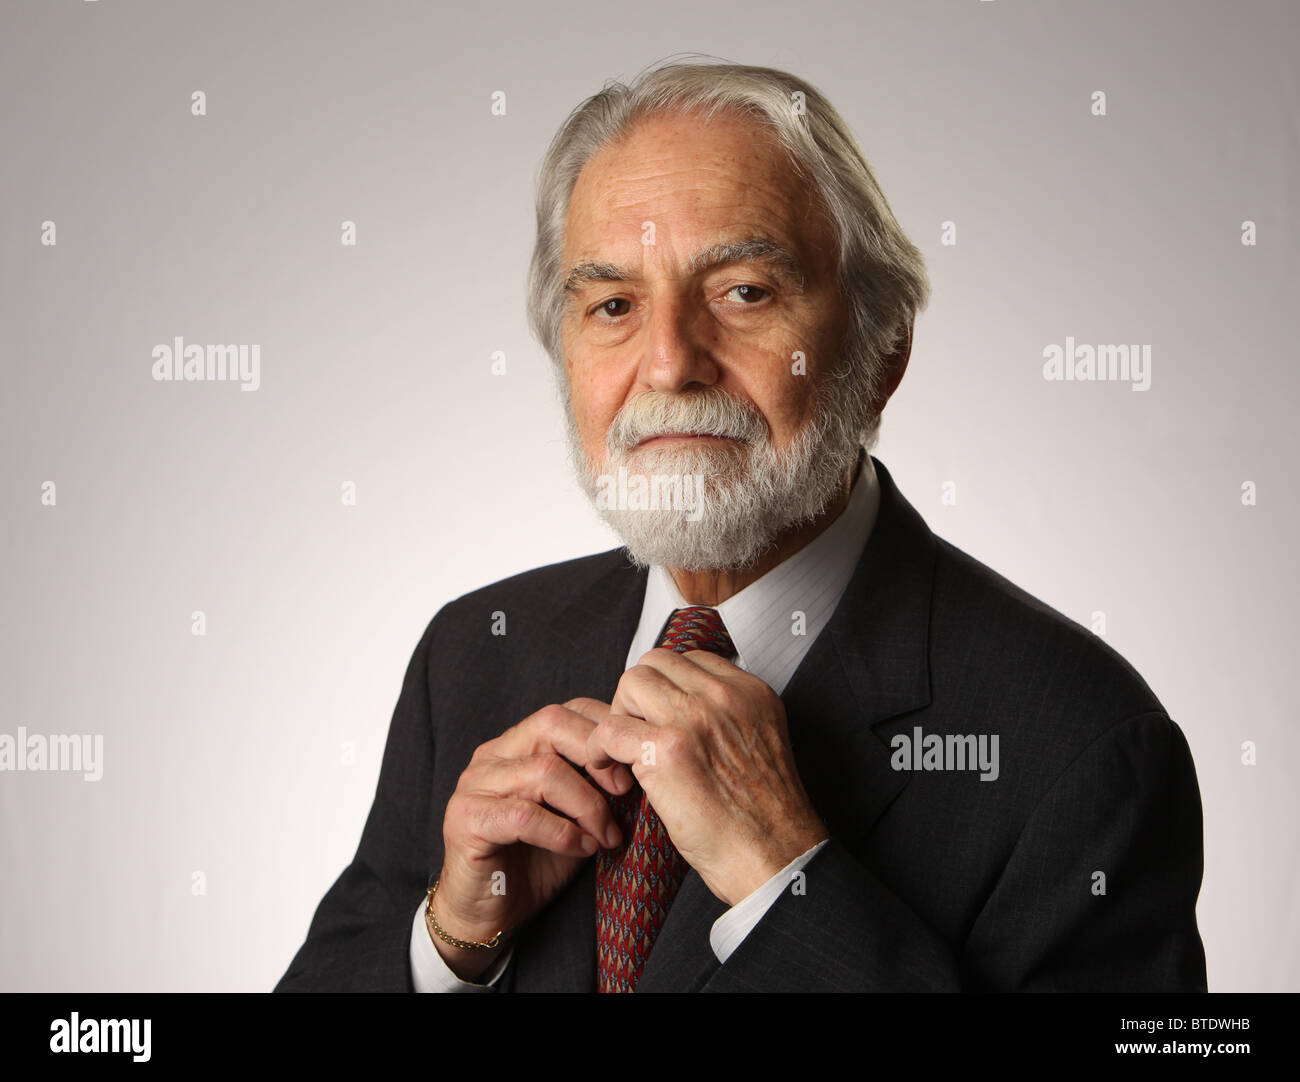 Portrait of bearded and grey haired senior businessman adjusting his tie, studio shot, white, grey background, October - Stock Image